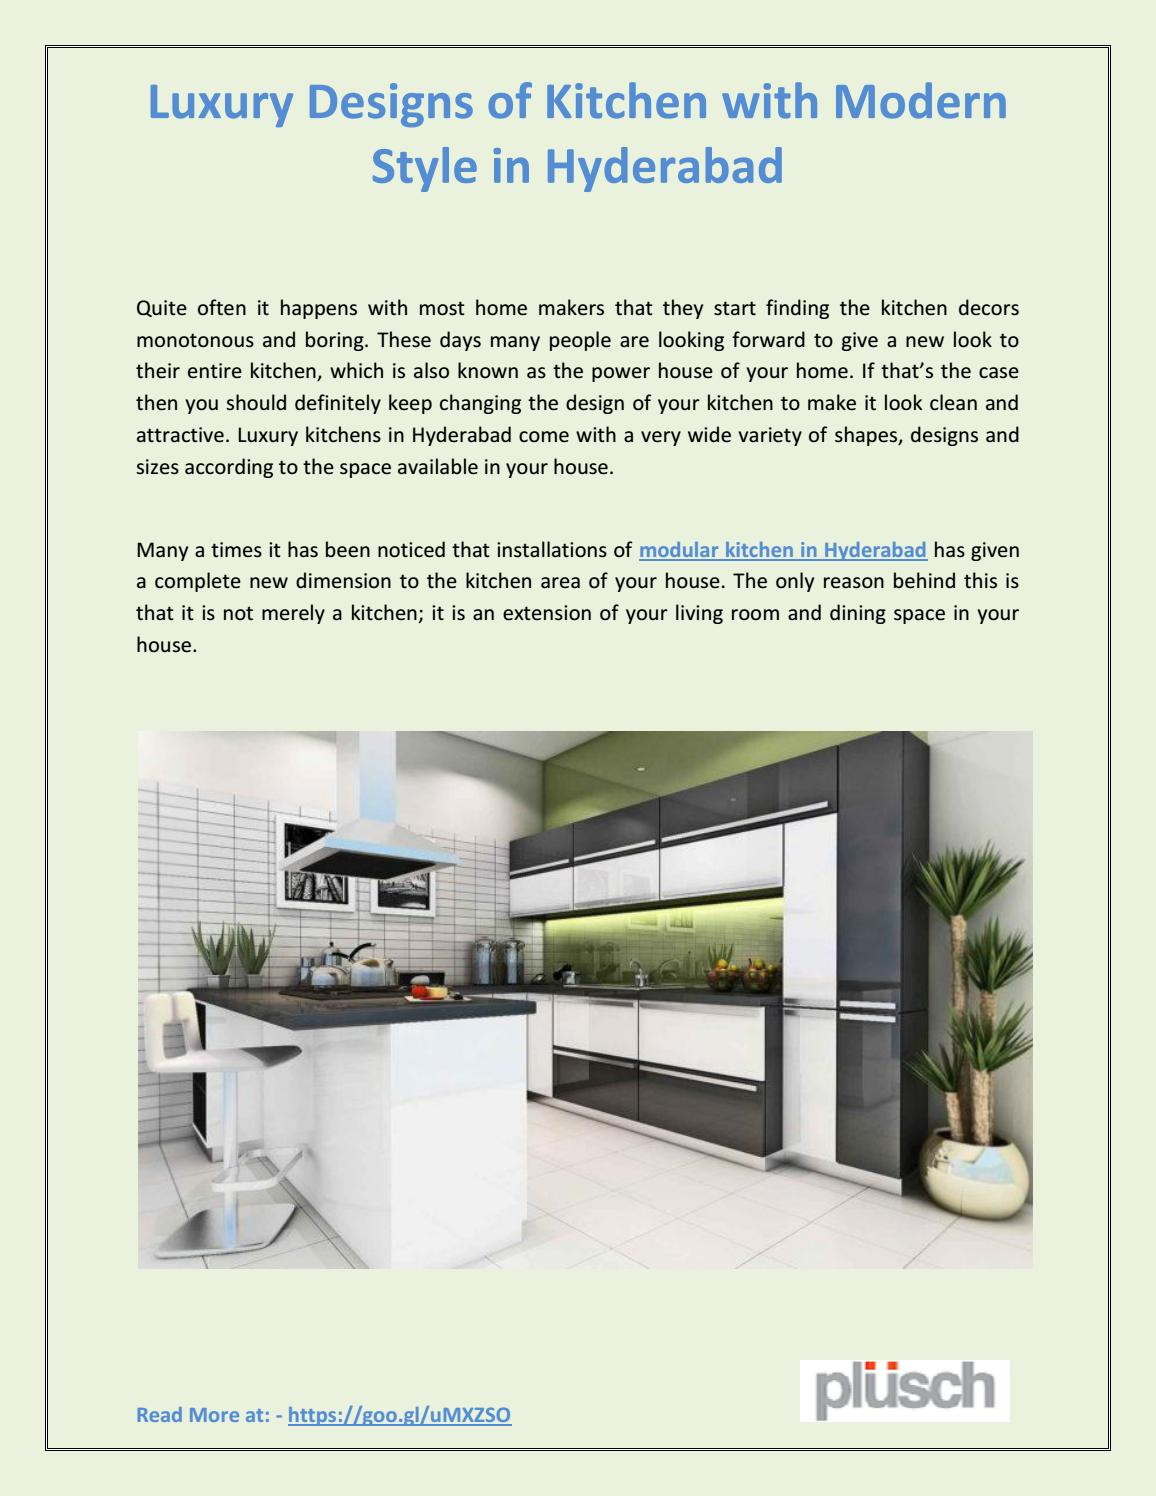 Get Fresh Designs of Modular & Luxury Kitchens in Hyderabad by ... on house drawing, house plans, house types, house logo, house interiors, house diagram, house layout, house designing, house rooms, house style, house desings, house map, house schematics, house color, house exterior, house blueprints, house paint, house cutout, house template, house print,